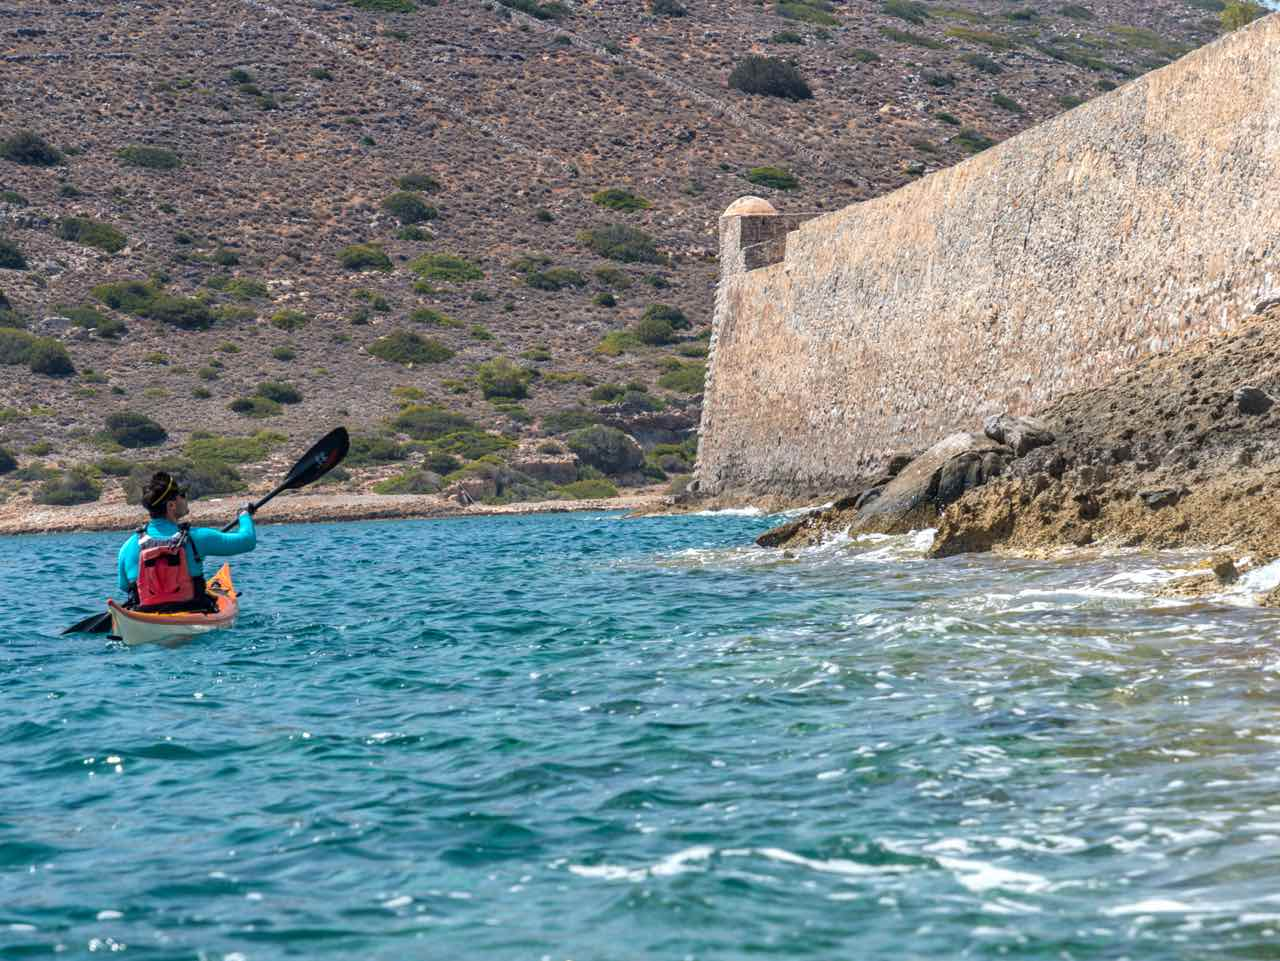 sea kayak trip elounda spinalonga, east crete sea kayak daily trips, best sea kayak elounda spinalonga, activities crete lasithi, activities elounda spinalonga